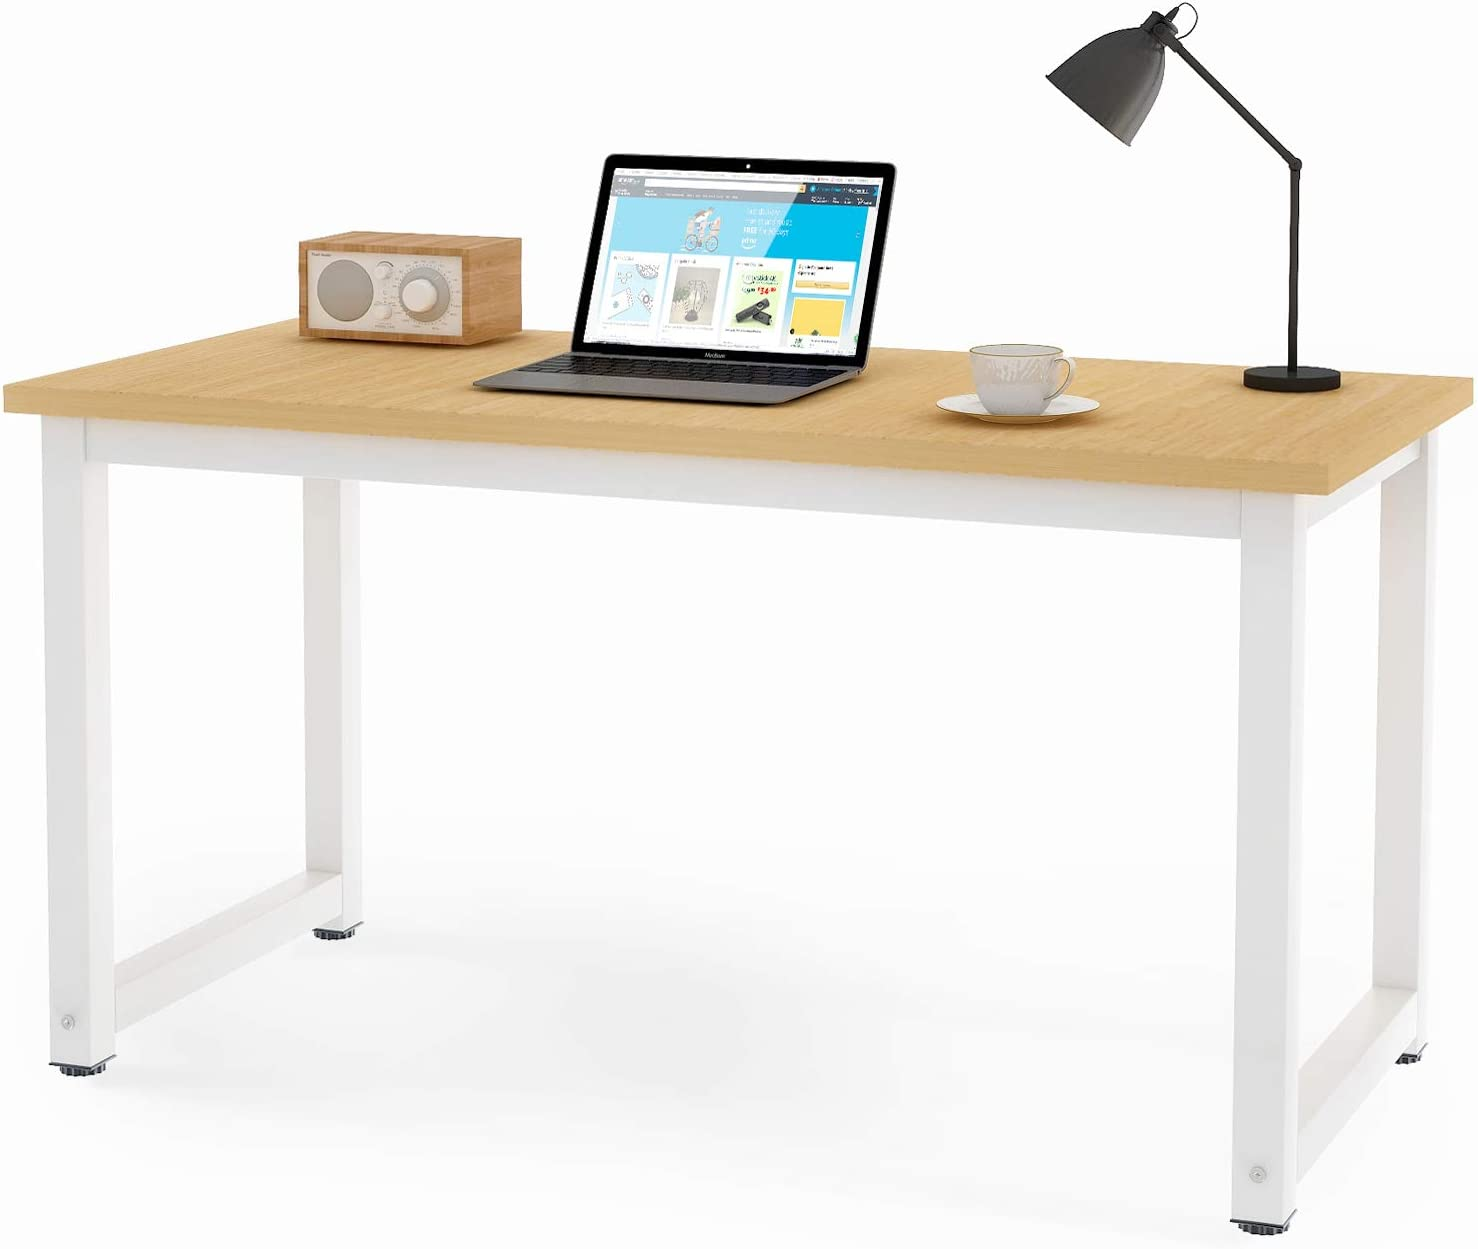 Symylife Computer Desk Office table Study Desk Computer PC Laptop Table Workstation Dining Gaming Desk for home Office Oak